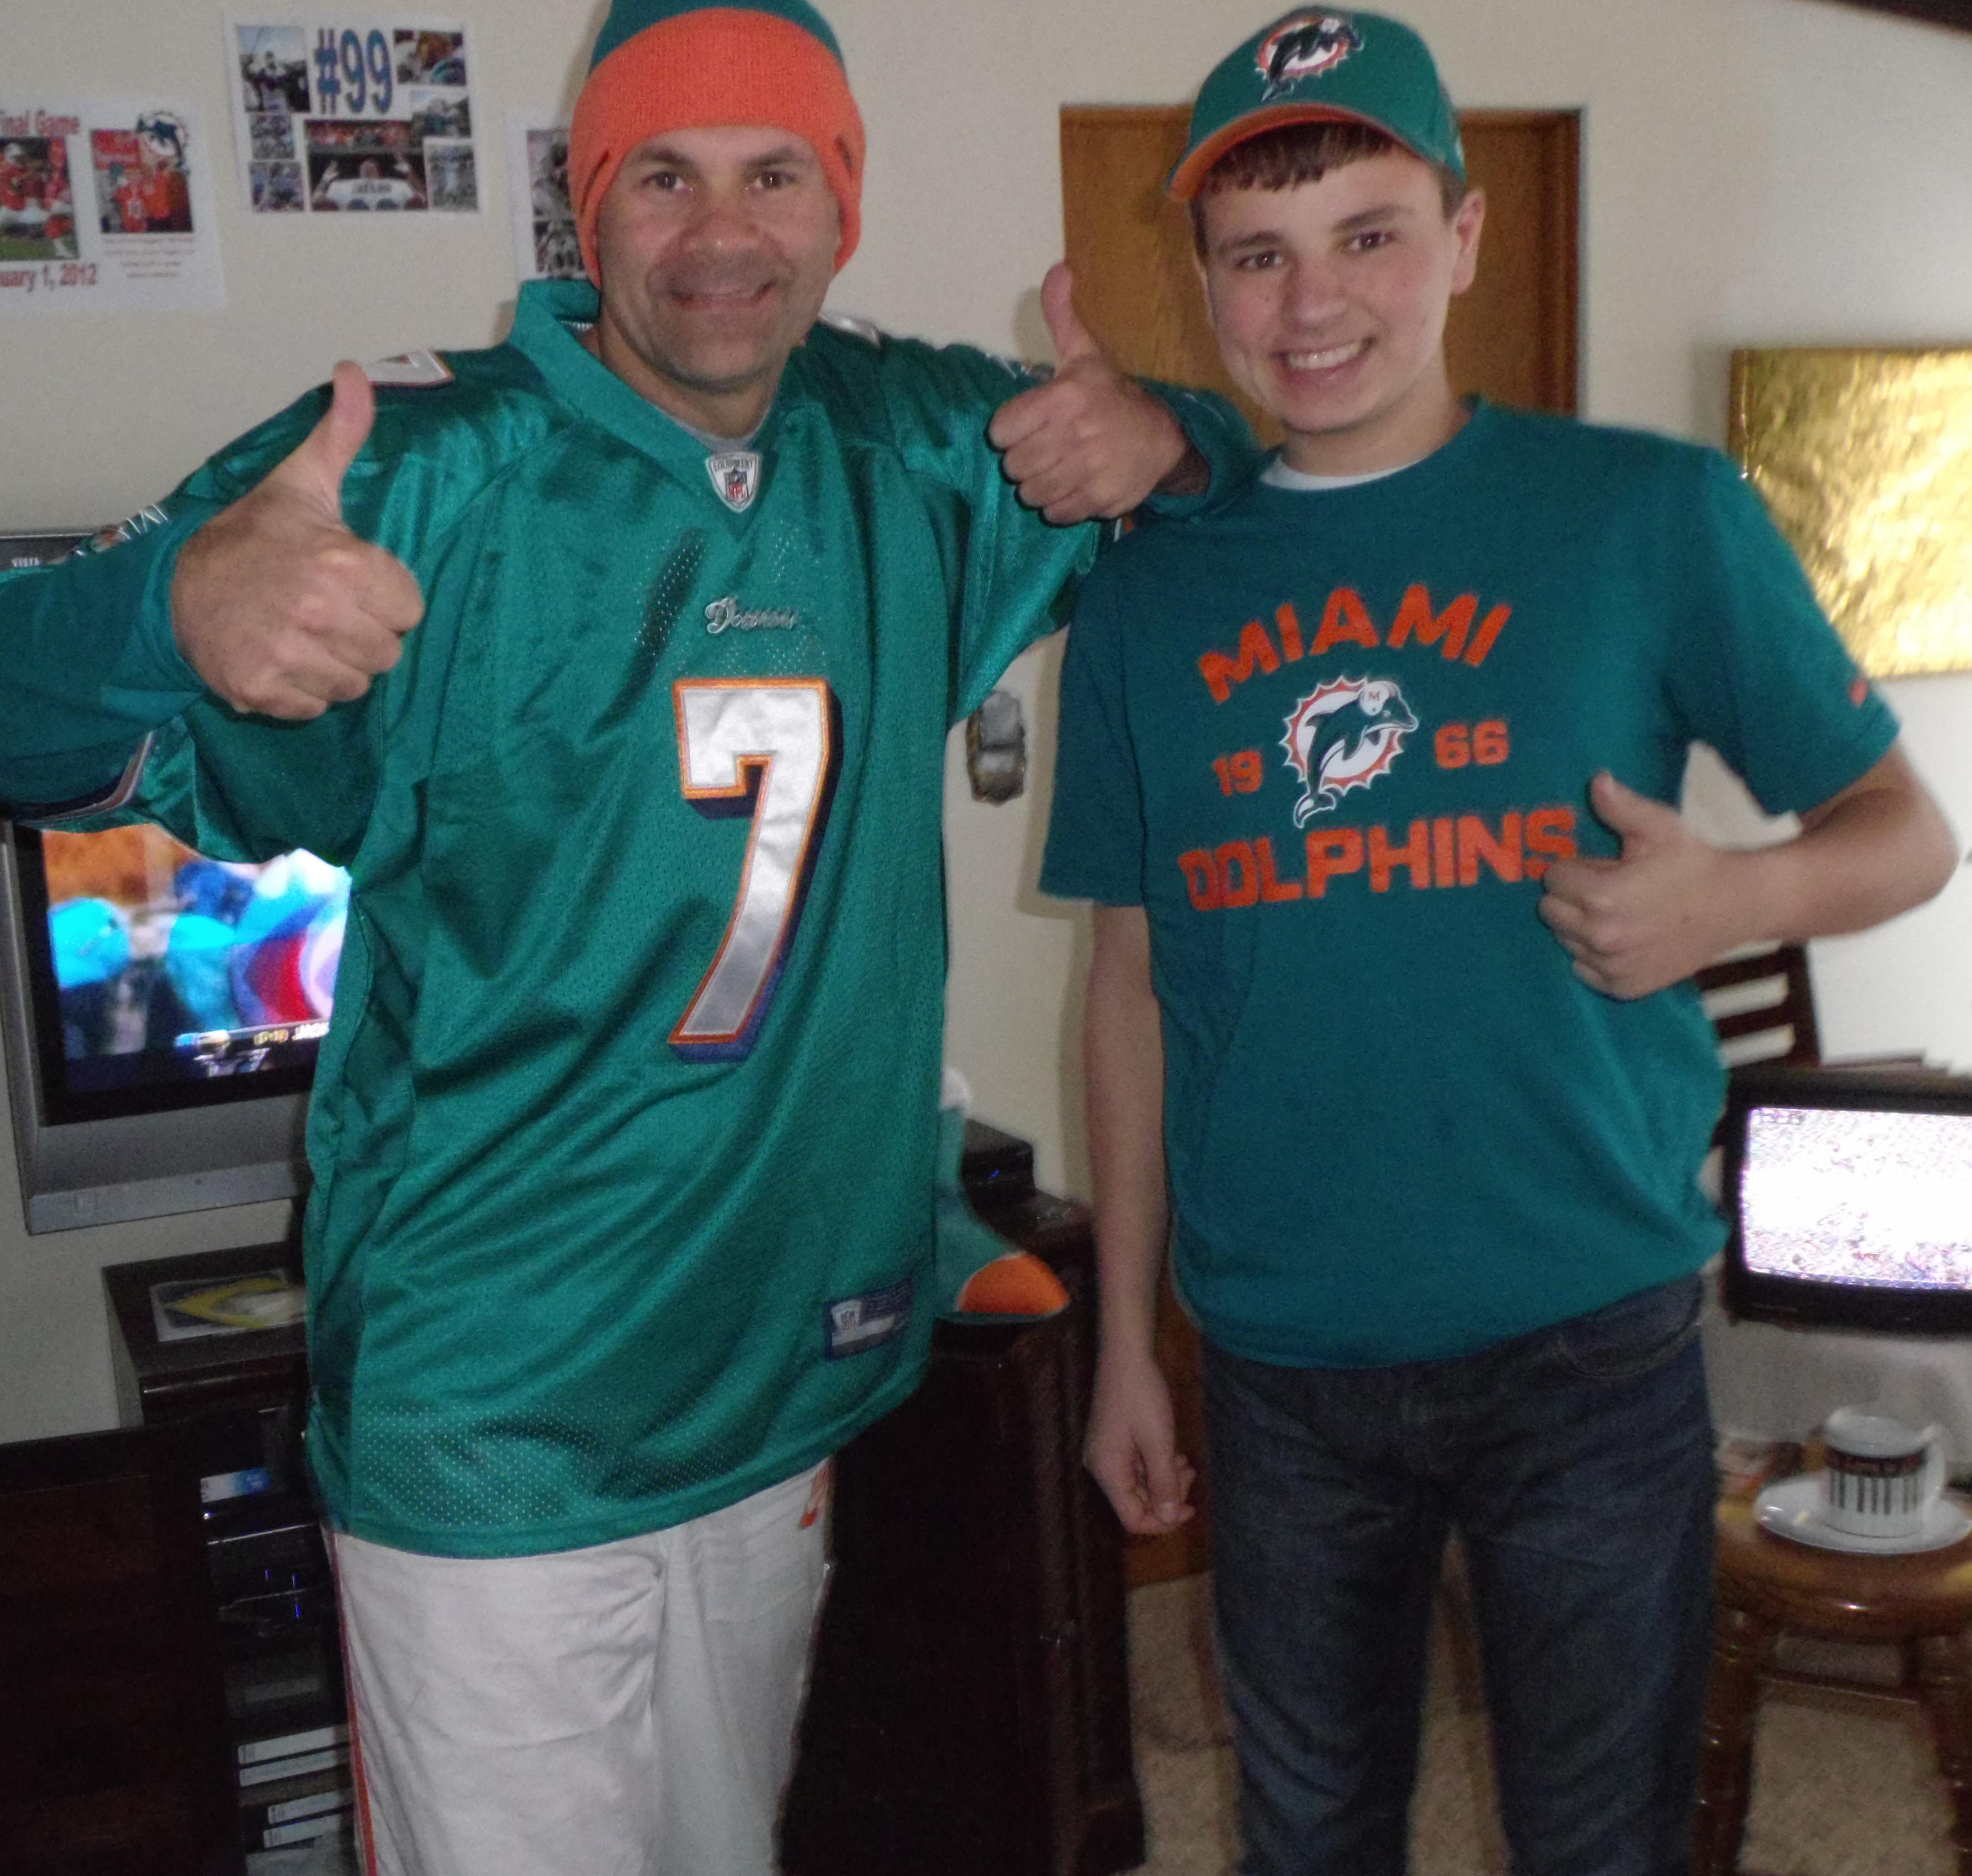 12-16-12 Alex & Uncle G celebrate FIN win over Jaguars, 24-3, in Week 15!